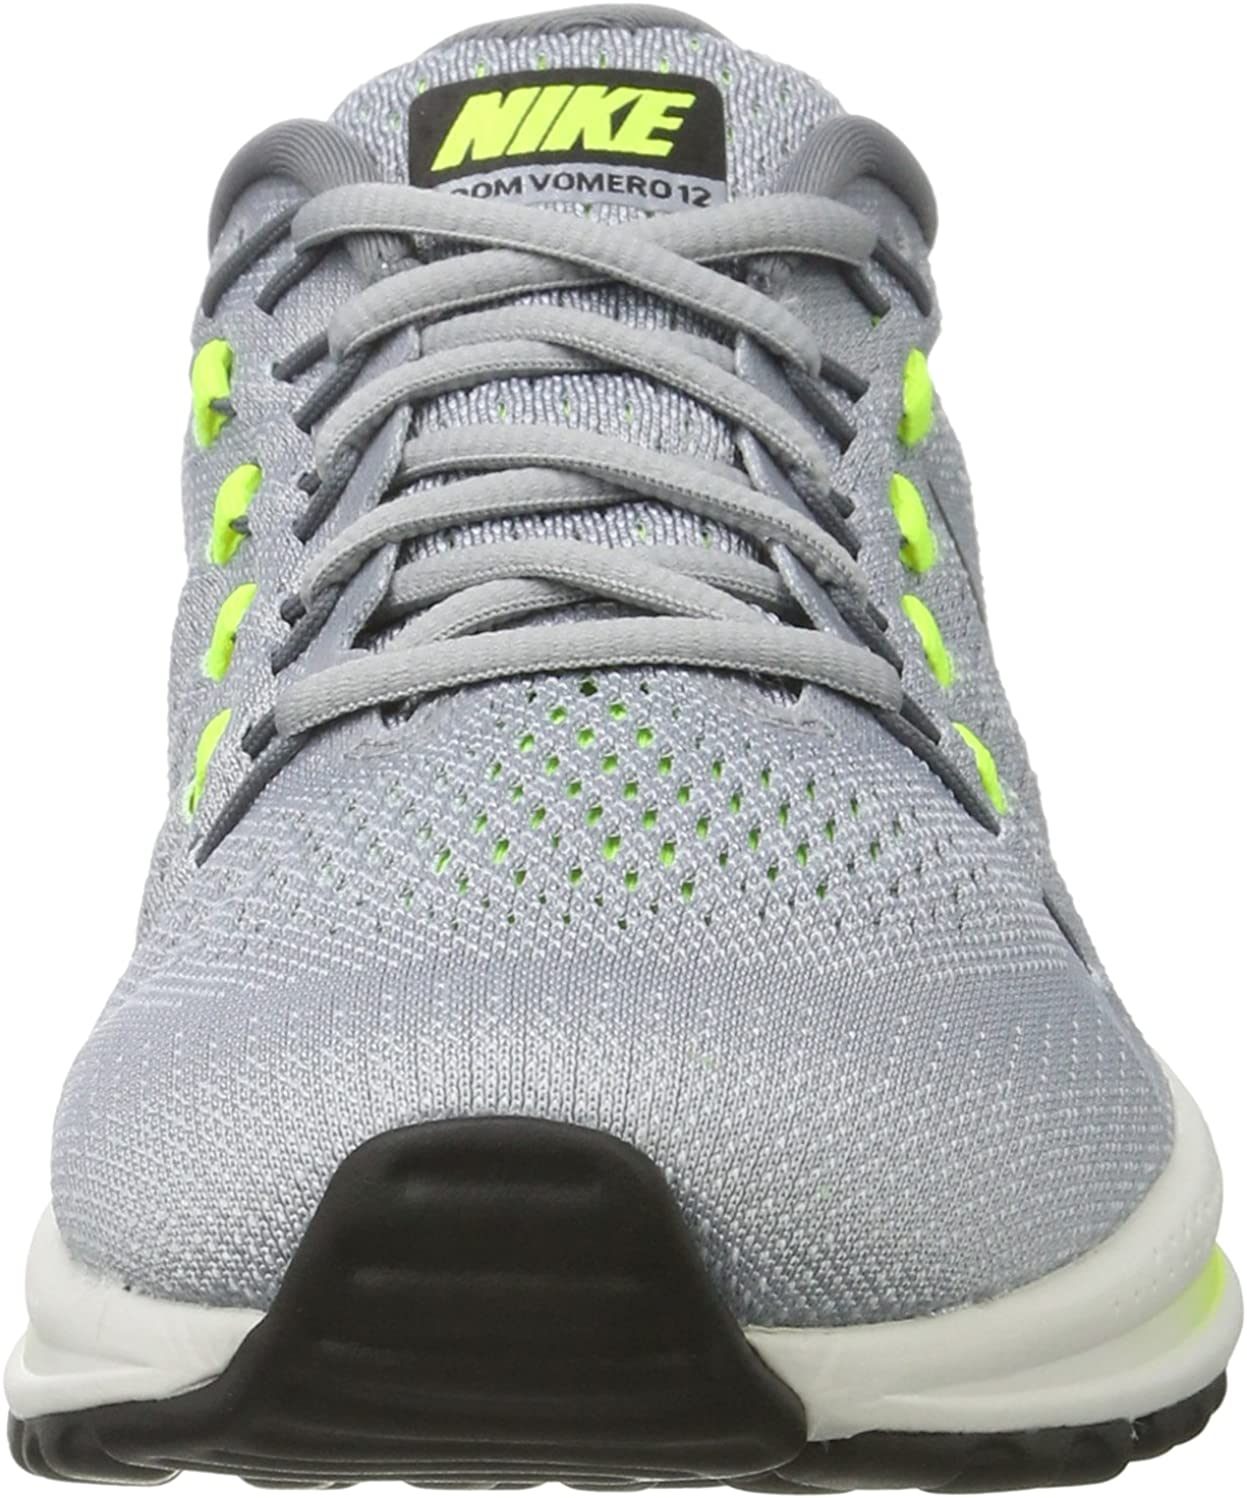 Nike Air Zoom Vomero 12, Zapatillas de Running para Hombre, Gris (Wolf Grey/Black/Cool Grey/Pure Platinum 002), 38.5 EU: Amazon.es: Zapatos y complementos